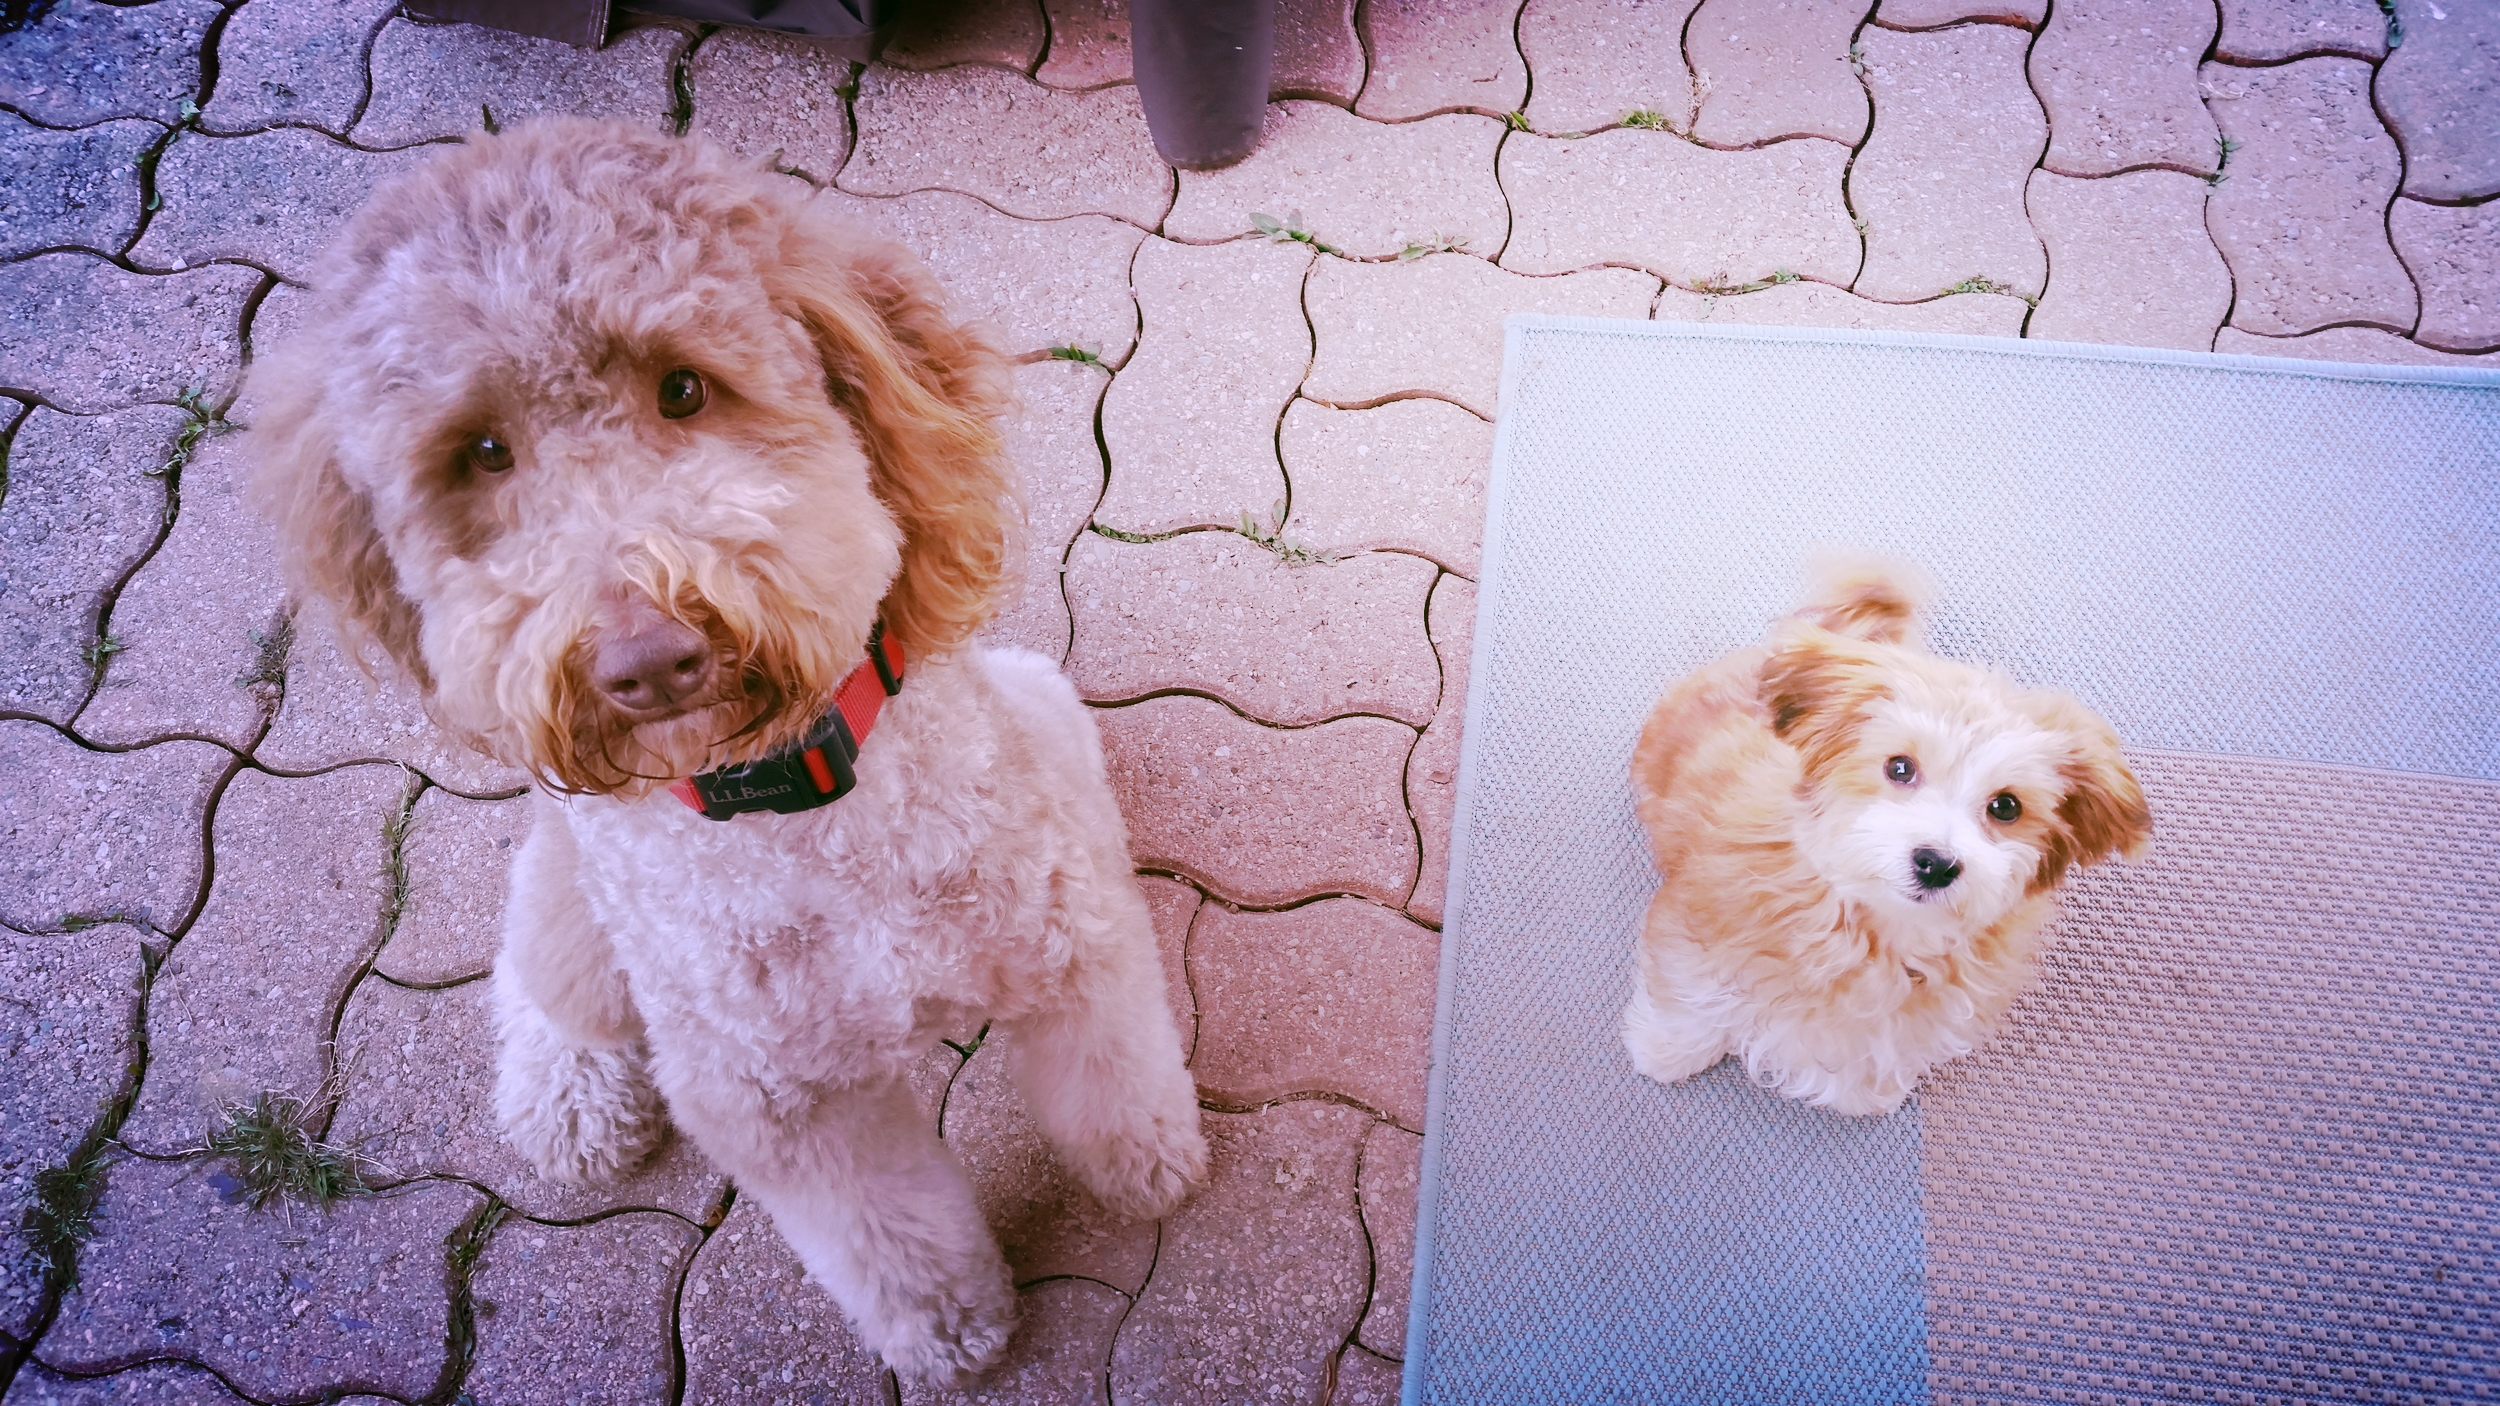 professional pet care services - training    Learn More